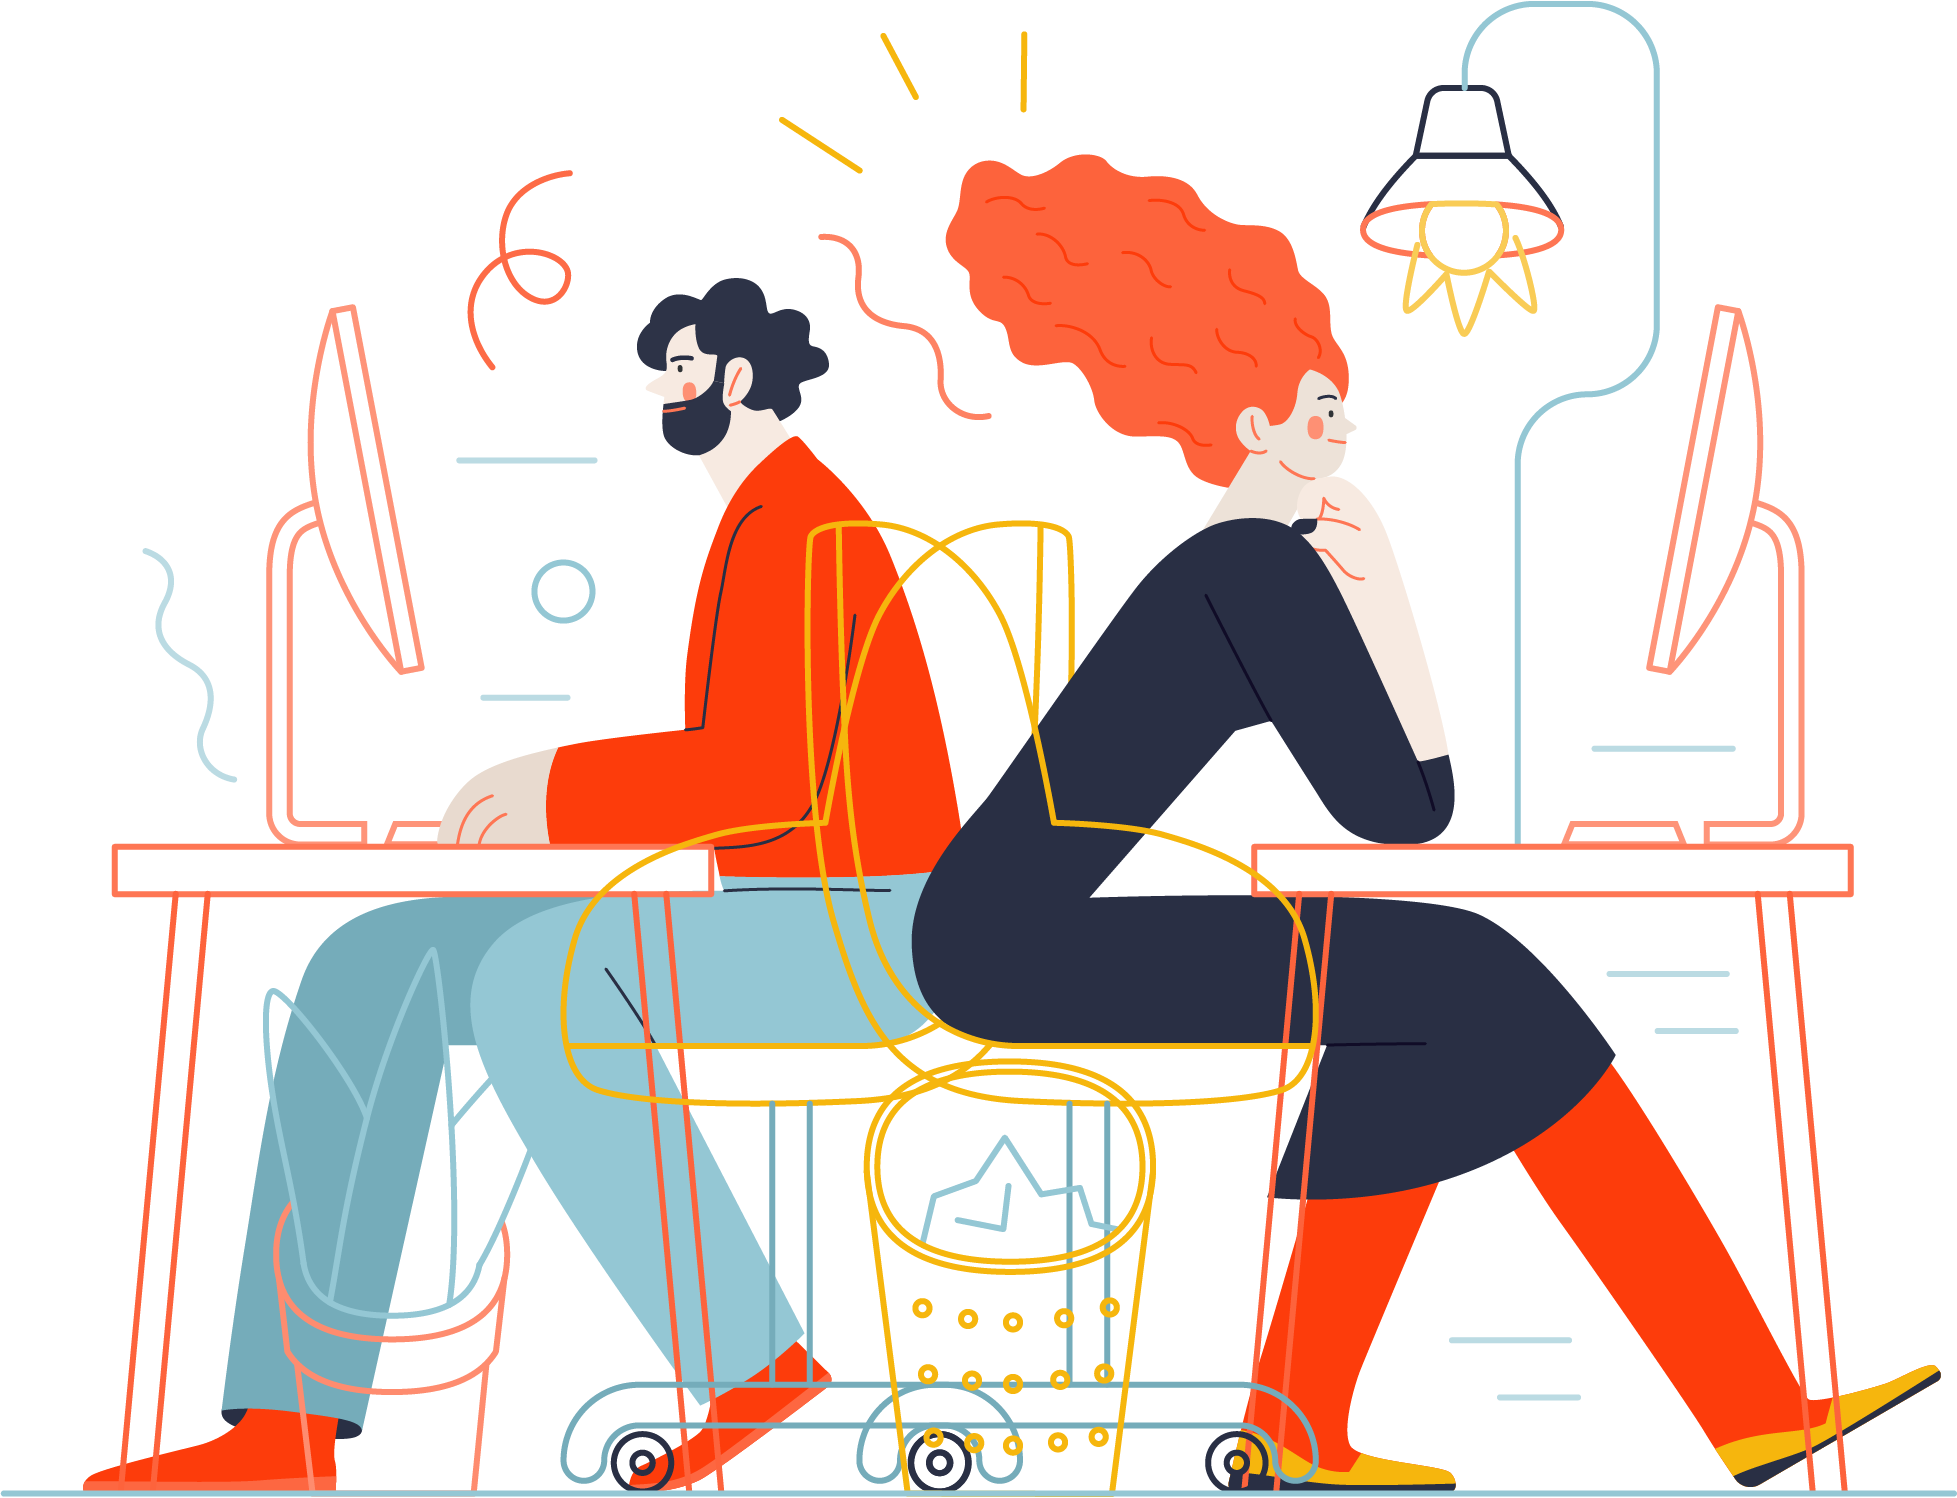 Illustration of two people working away at their desks